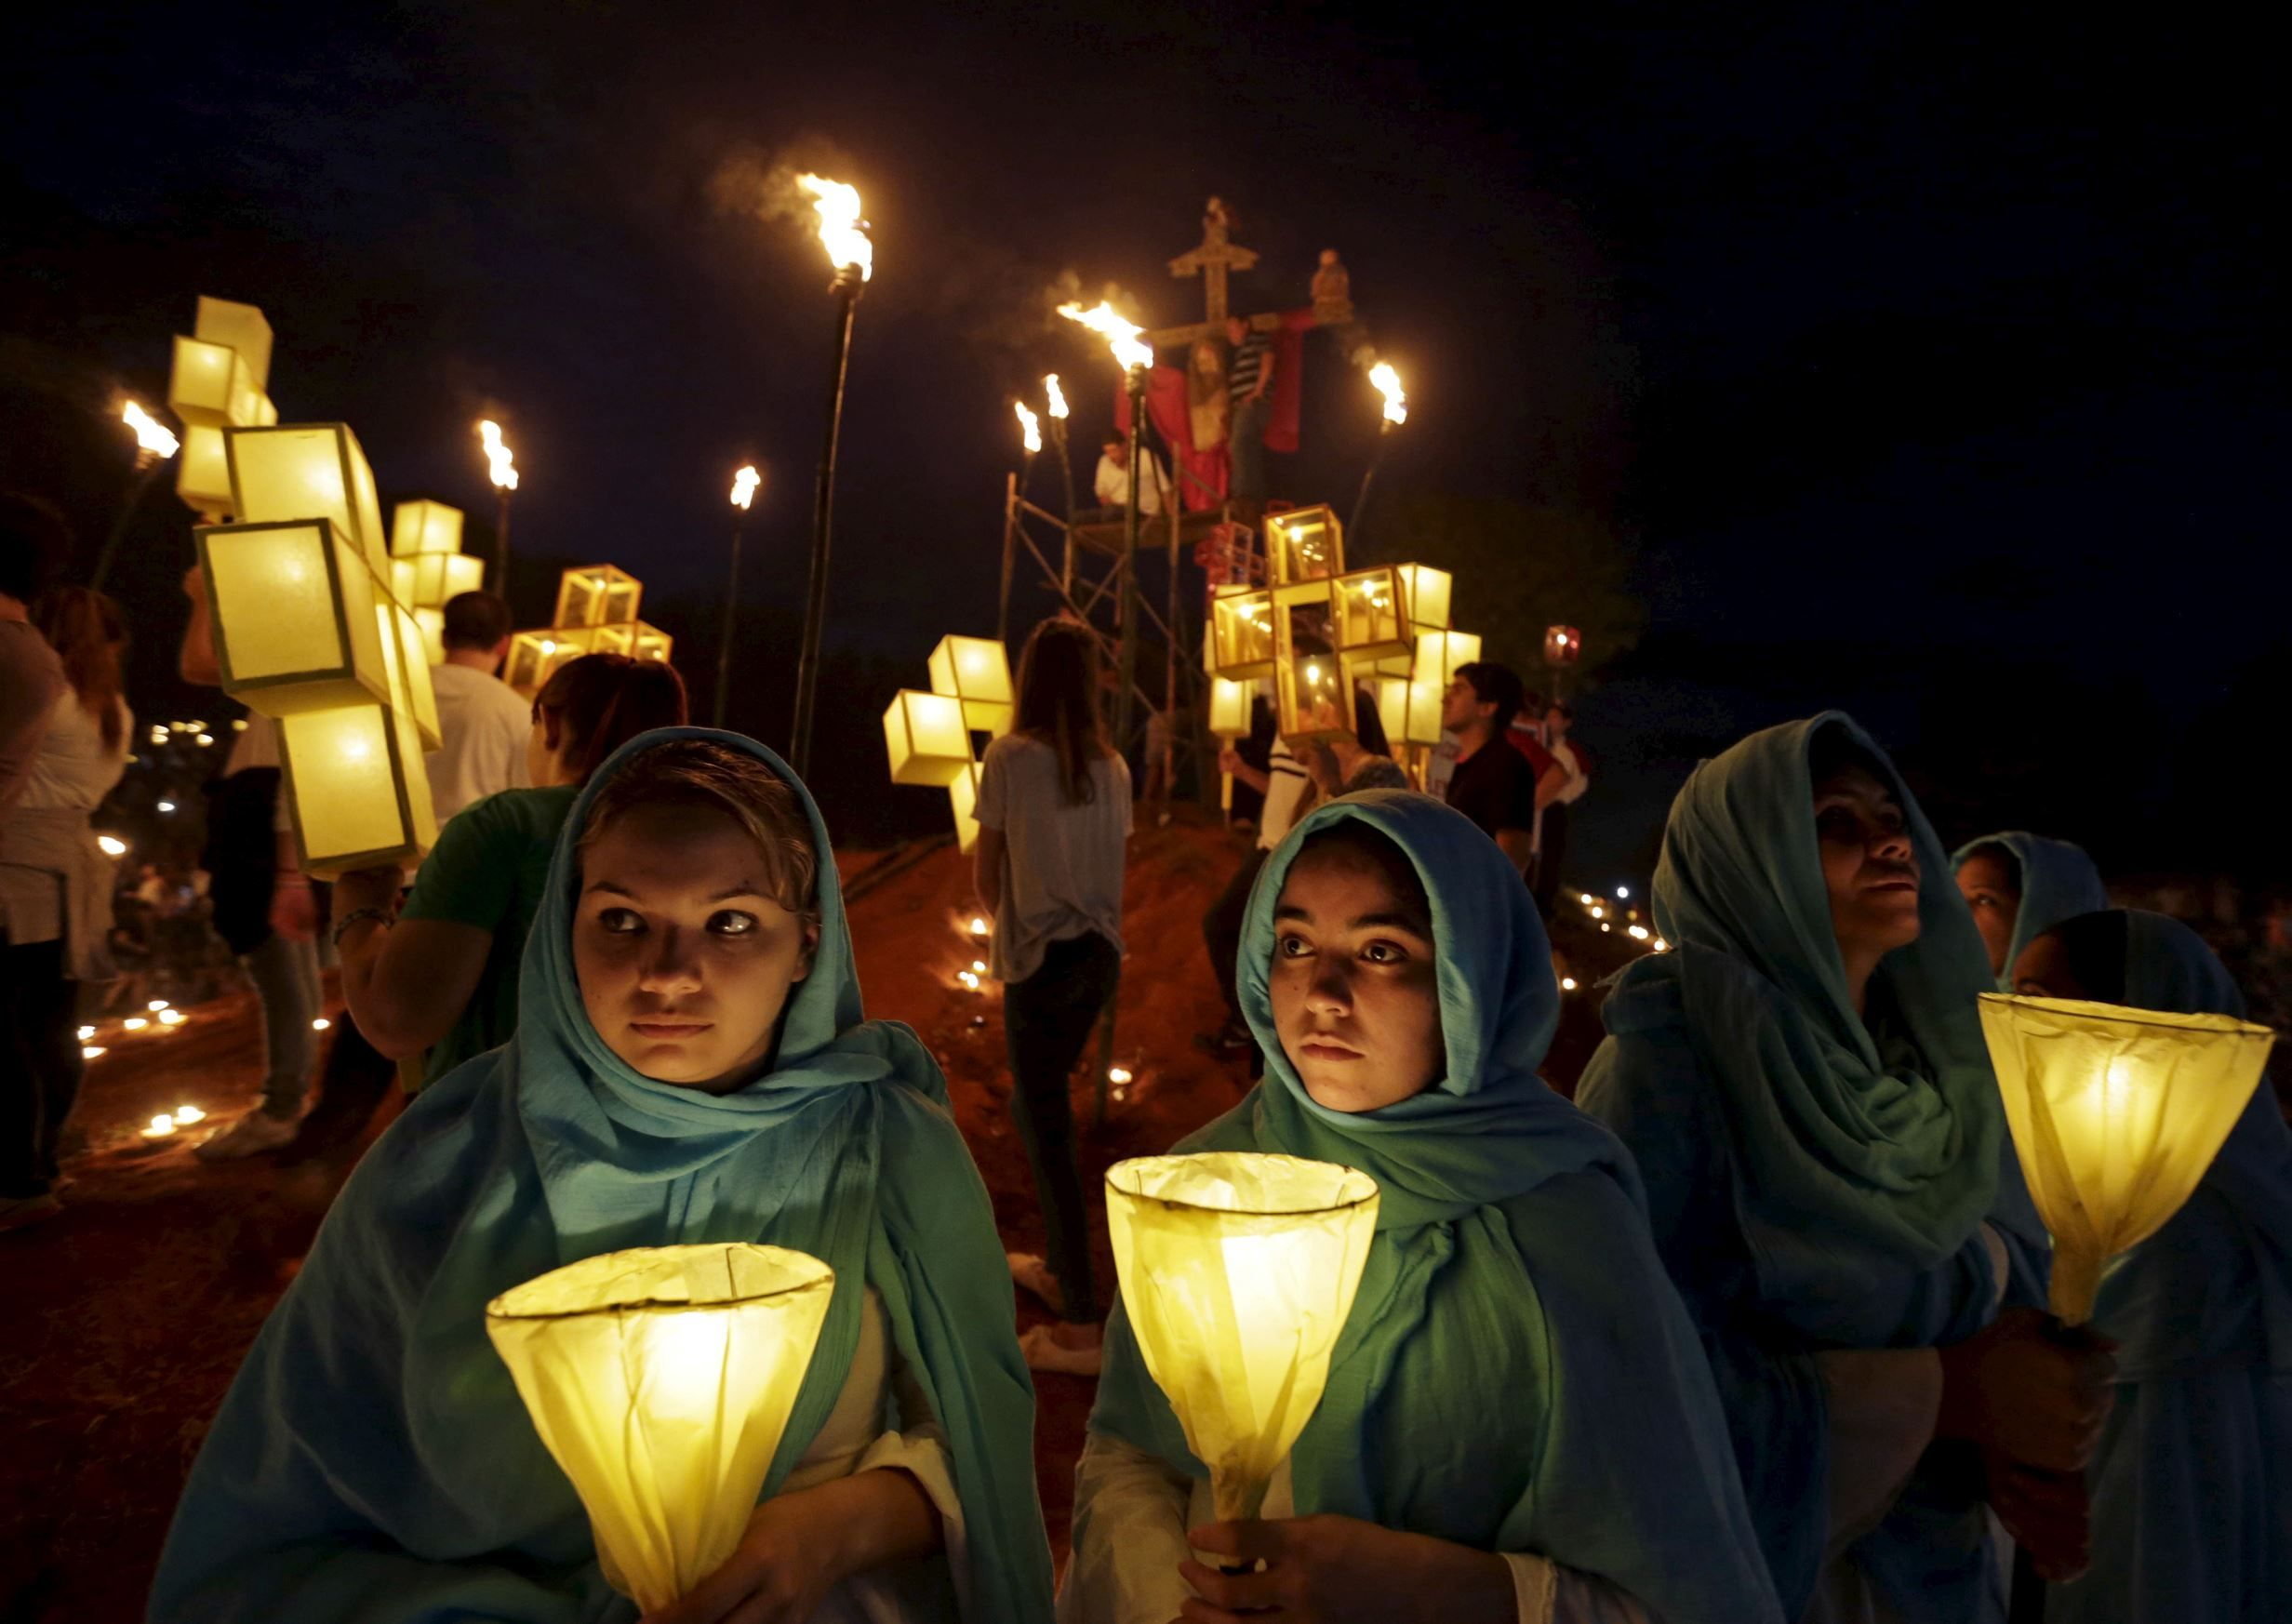 a statue of jesus christ is surrounded by women holding candles